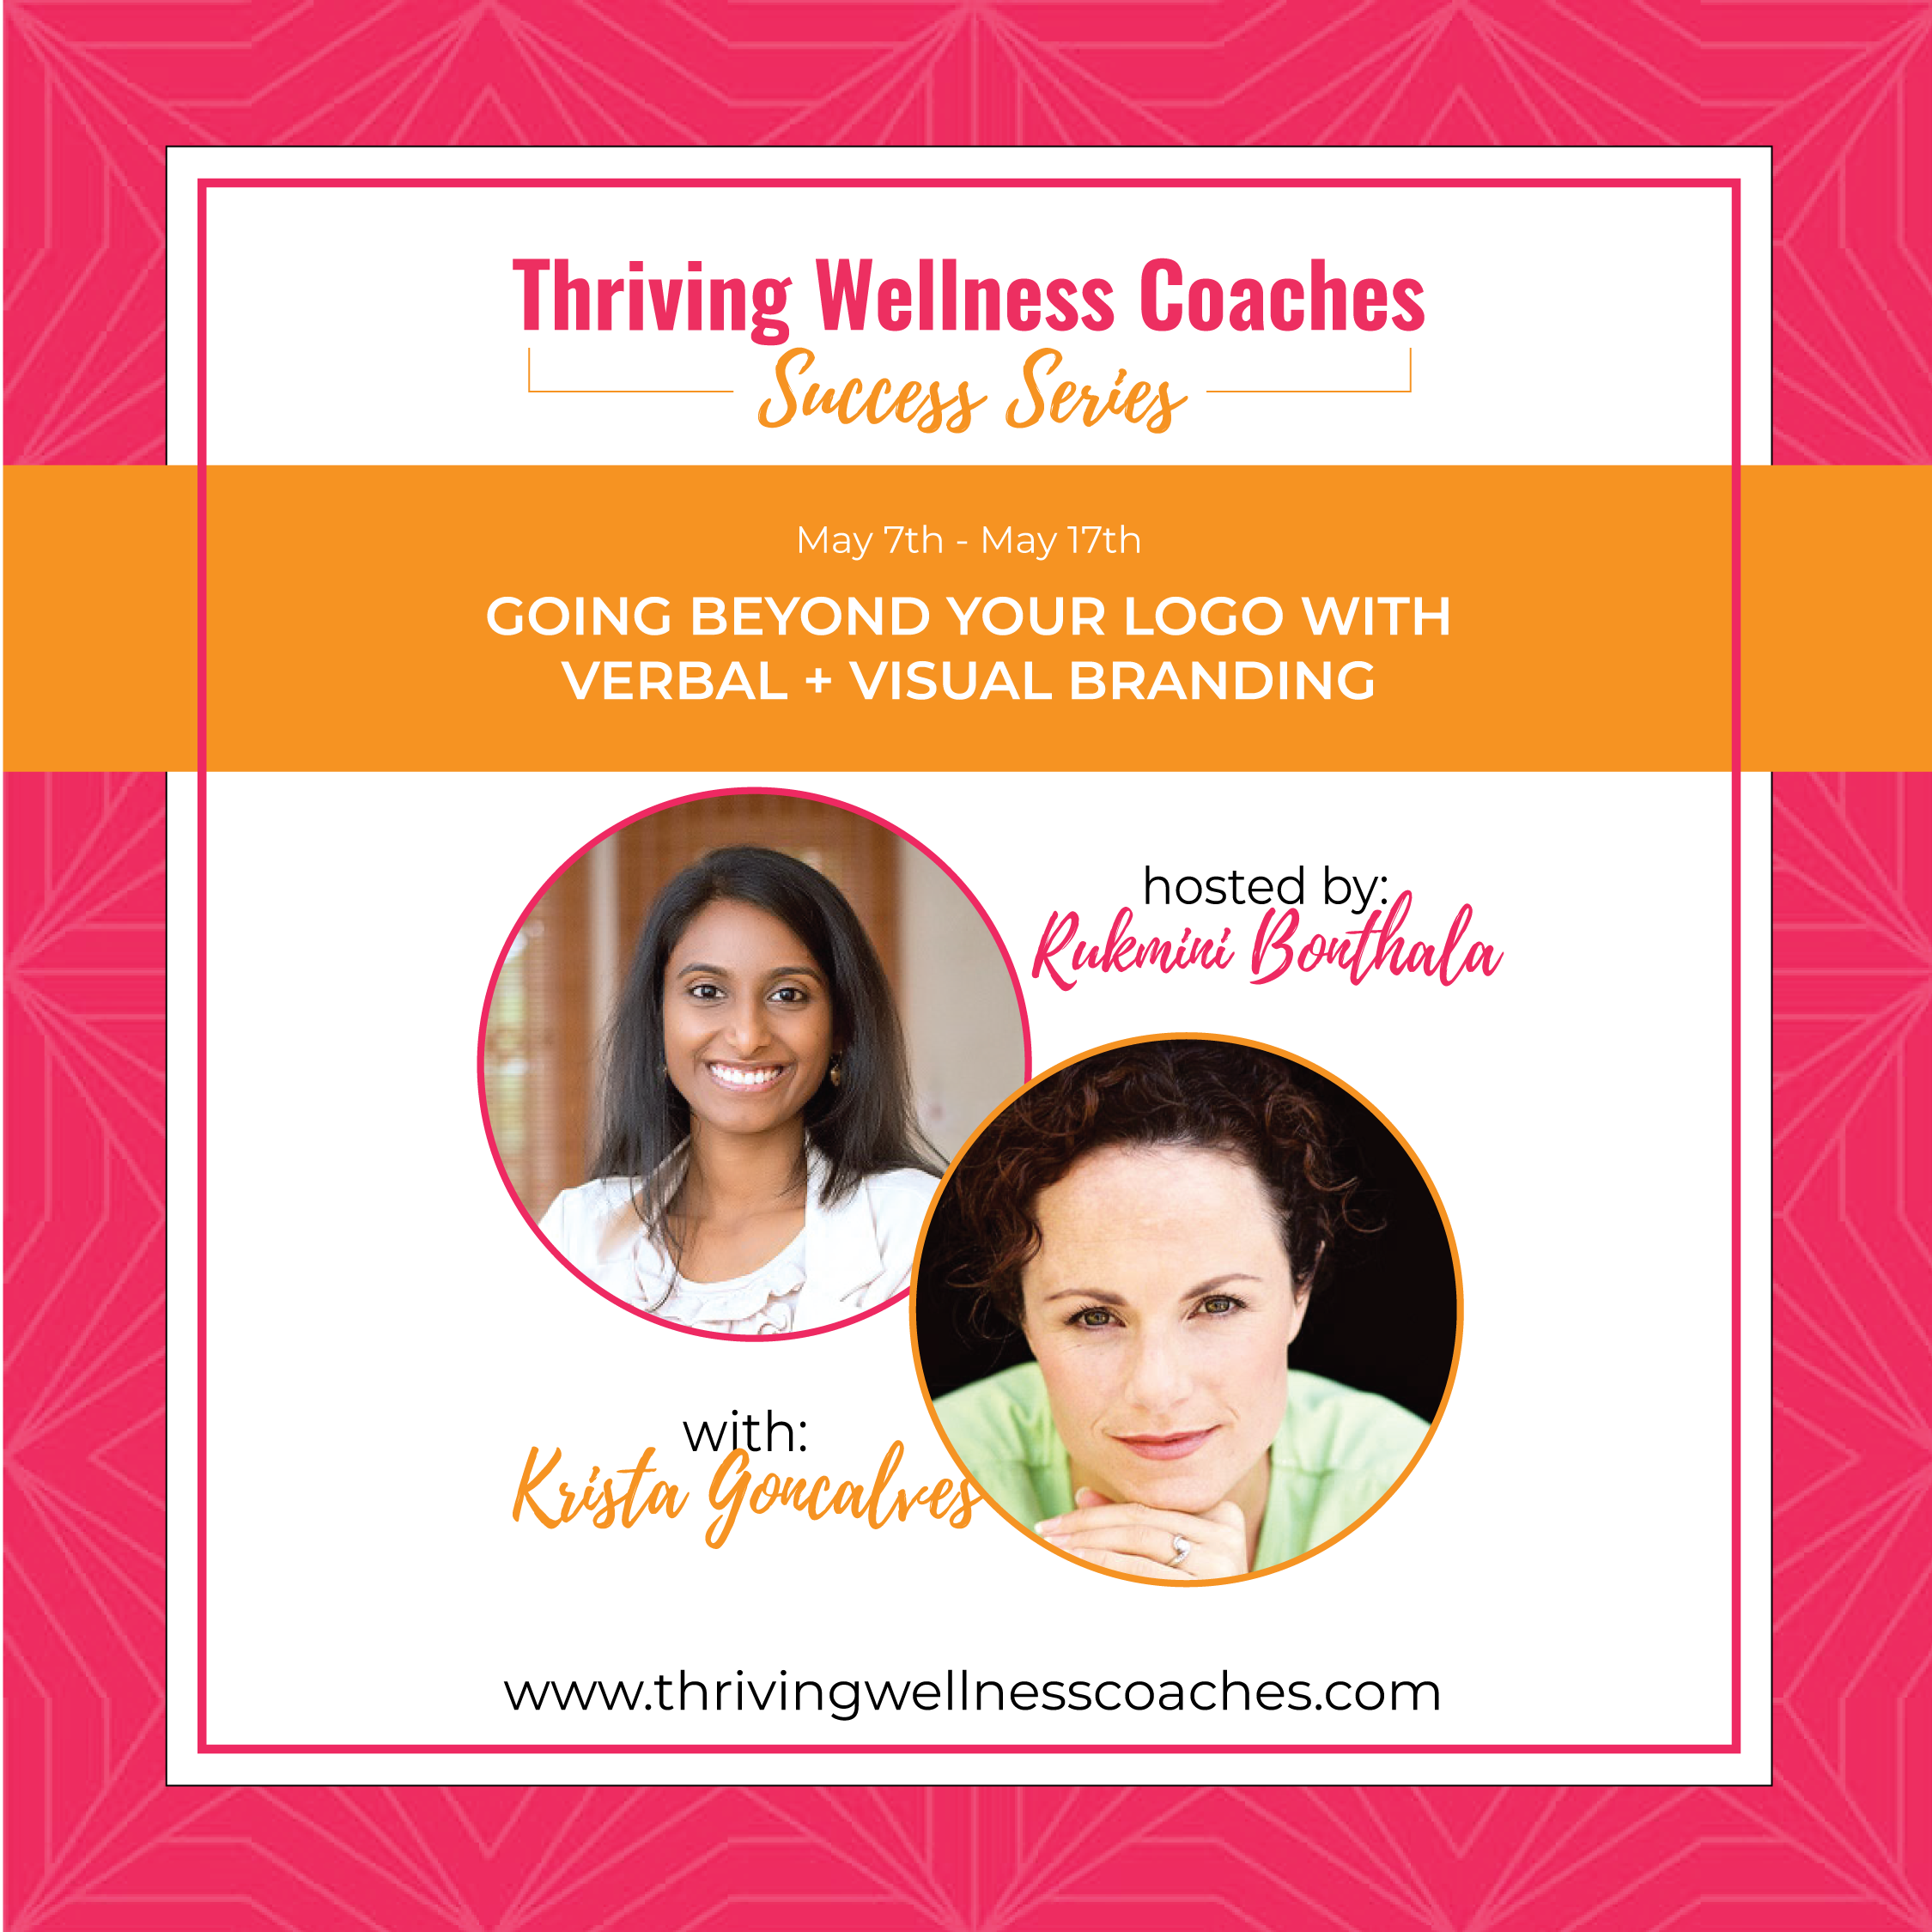 Krista Goncalves Featured in the Media: Thriving Wellness Coaches Success Series